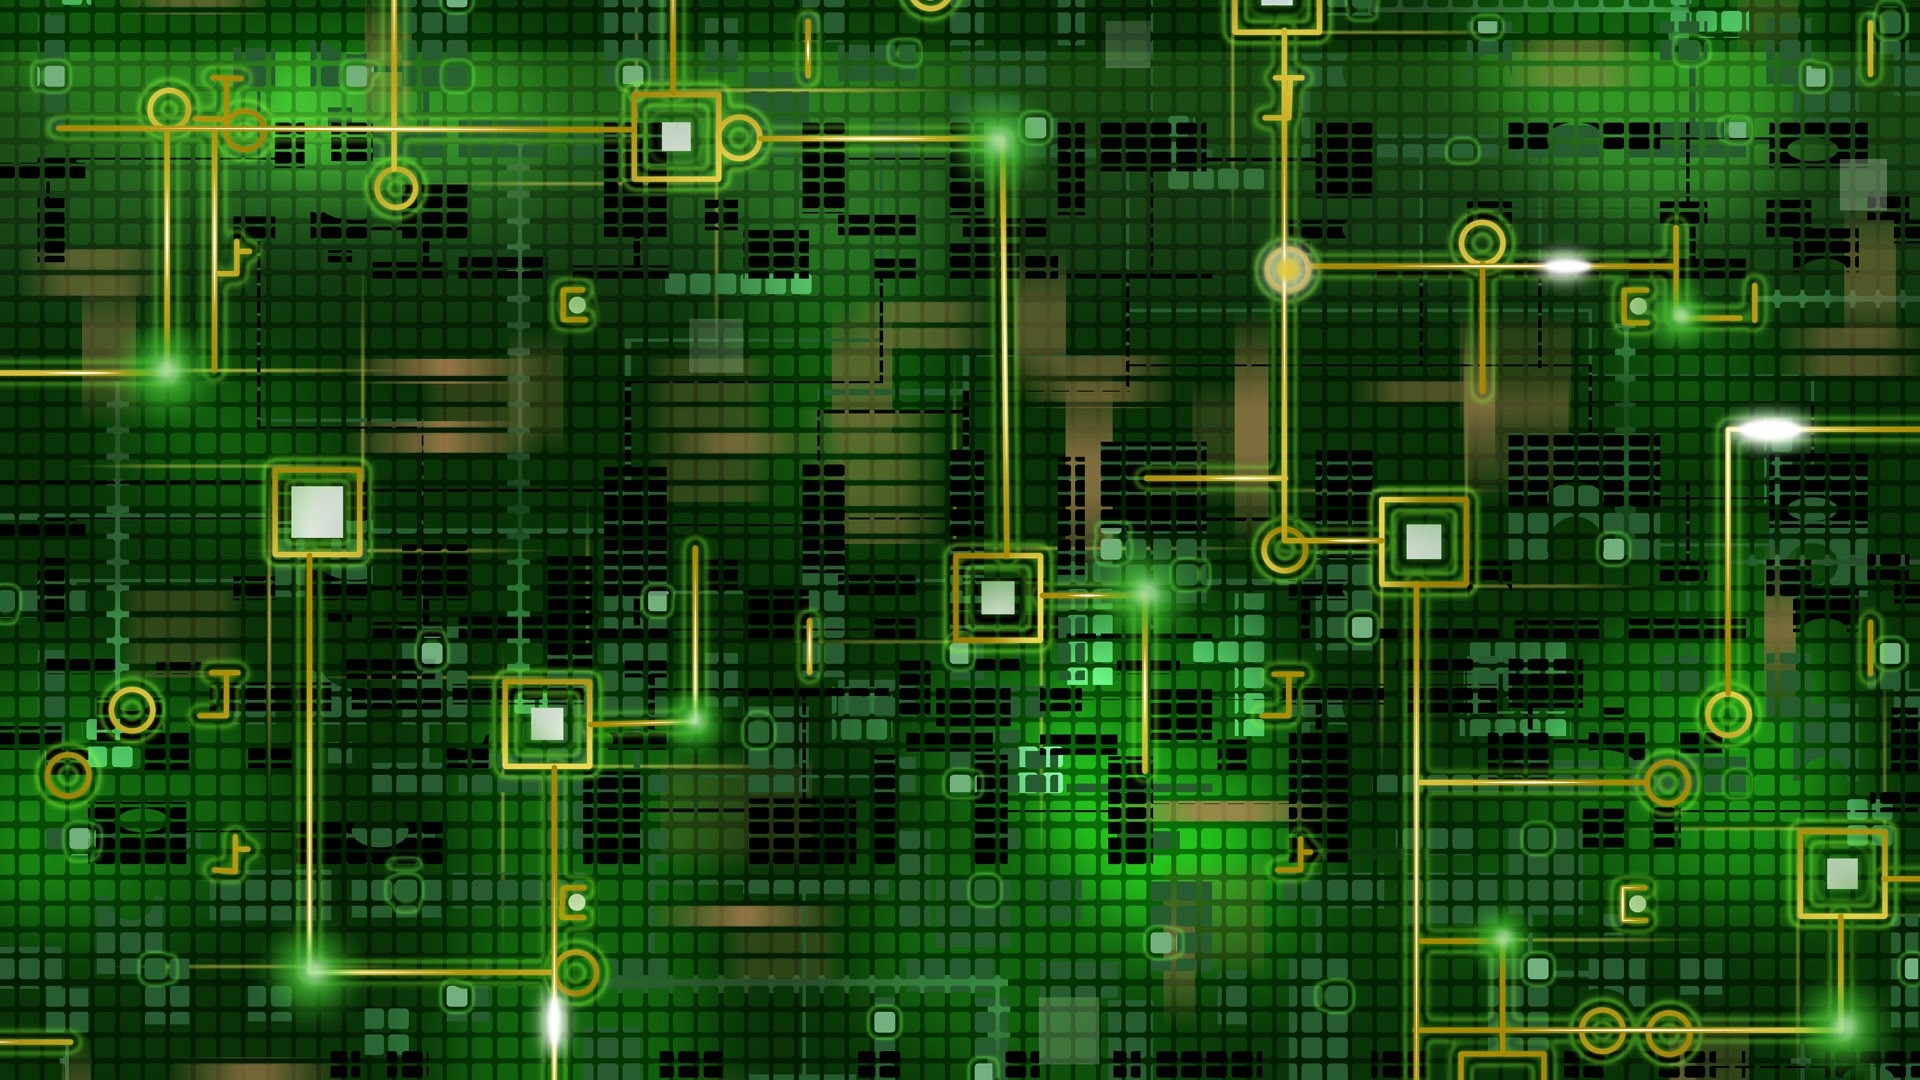 chip-grid-background-black-green-line-circuit-1920x1080-1920%C3%971080-wallpaper-wp3803765